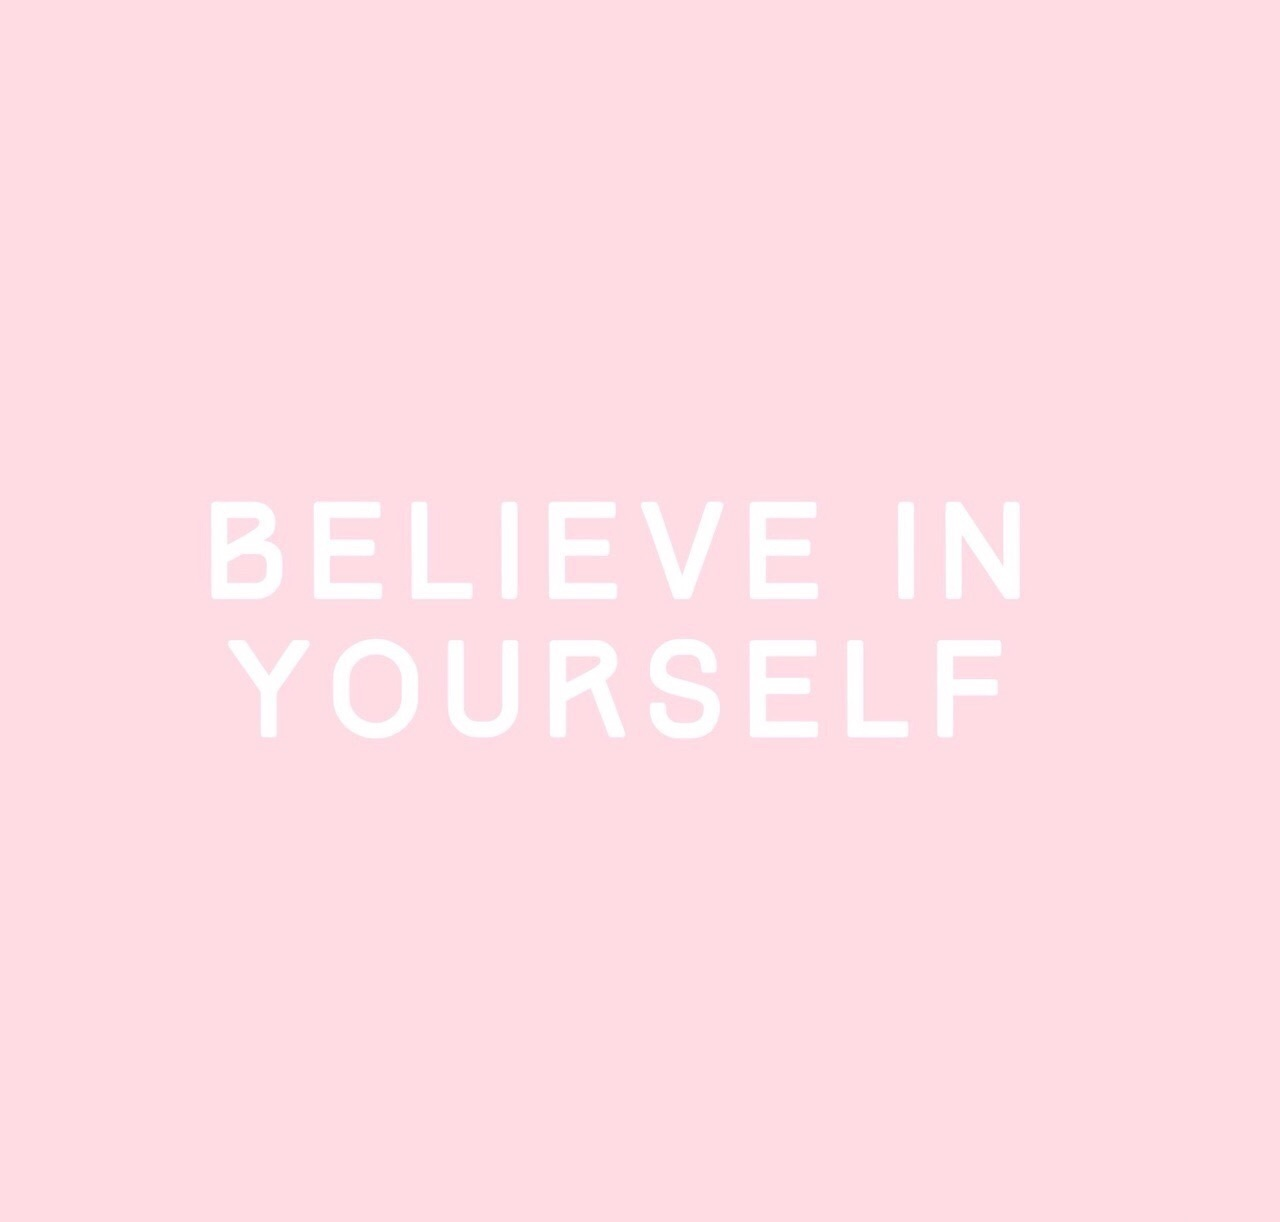 aesthetic, motivation, and pink image